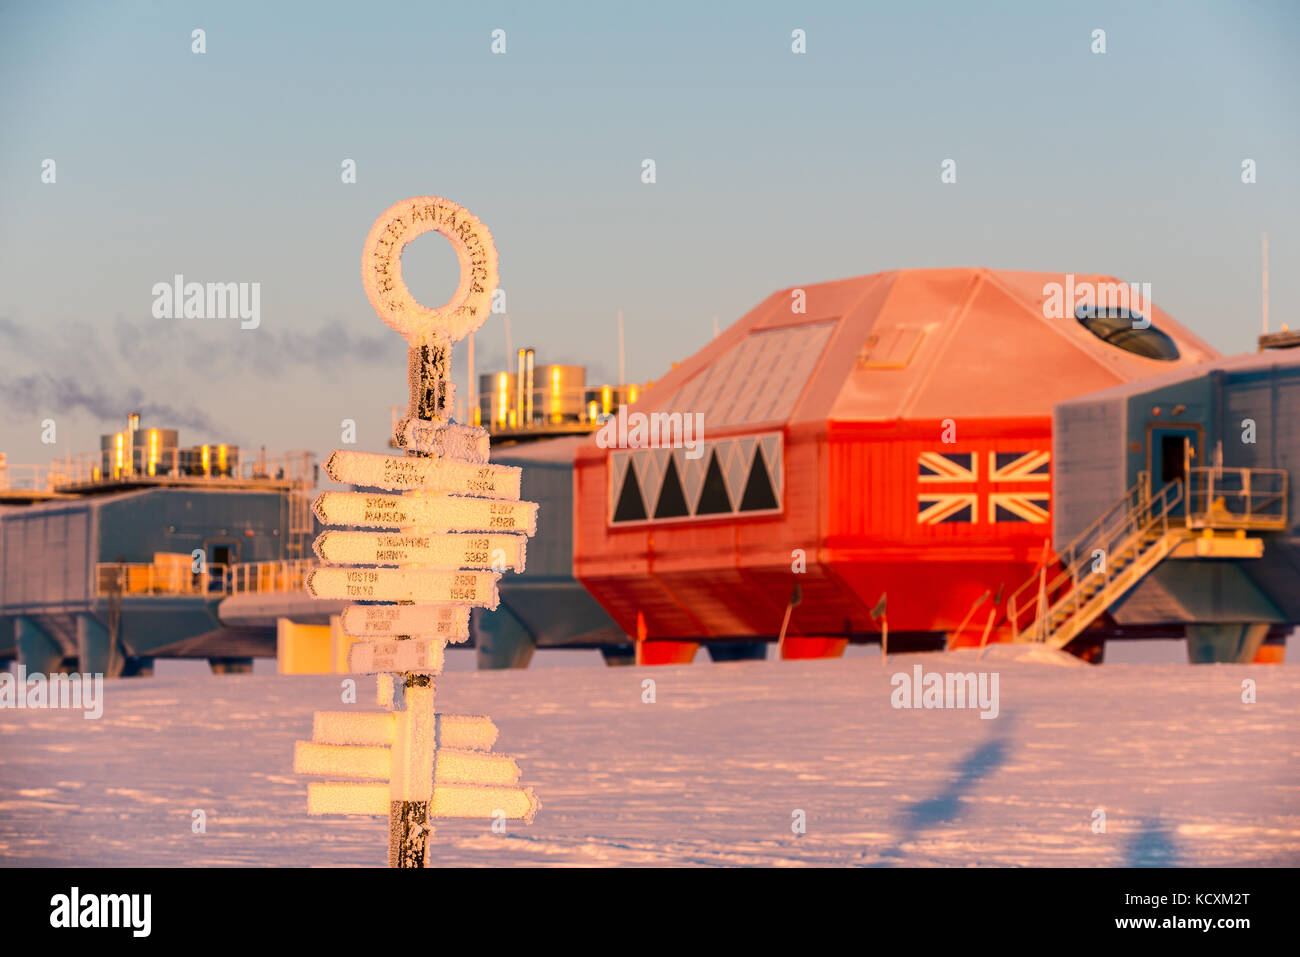 A frosty Halley Research Station in the morning sun. - Stock Image